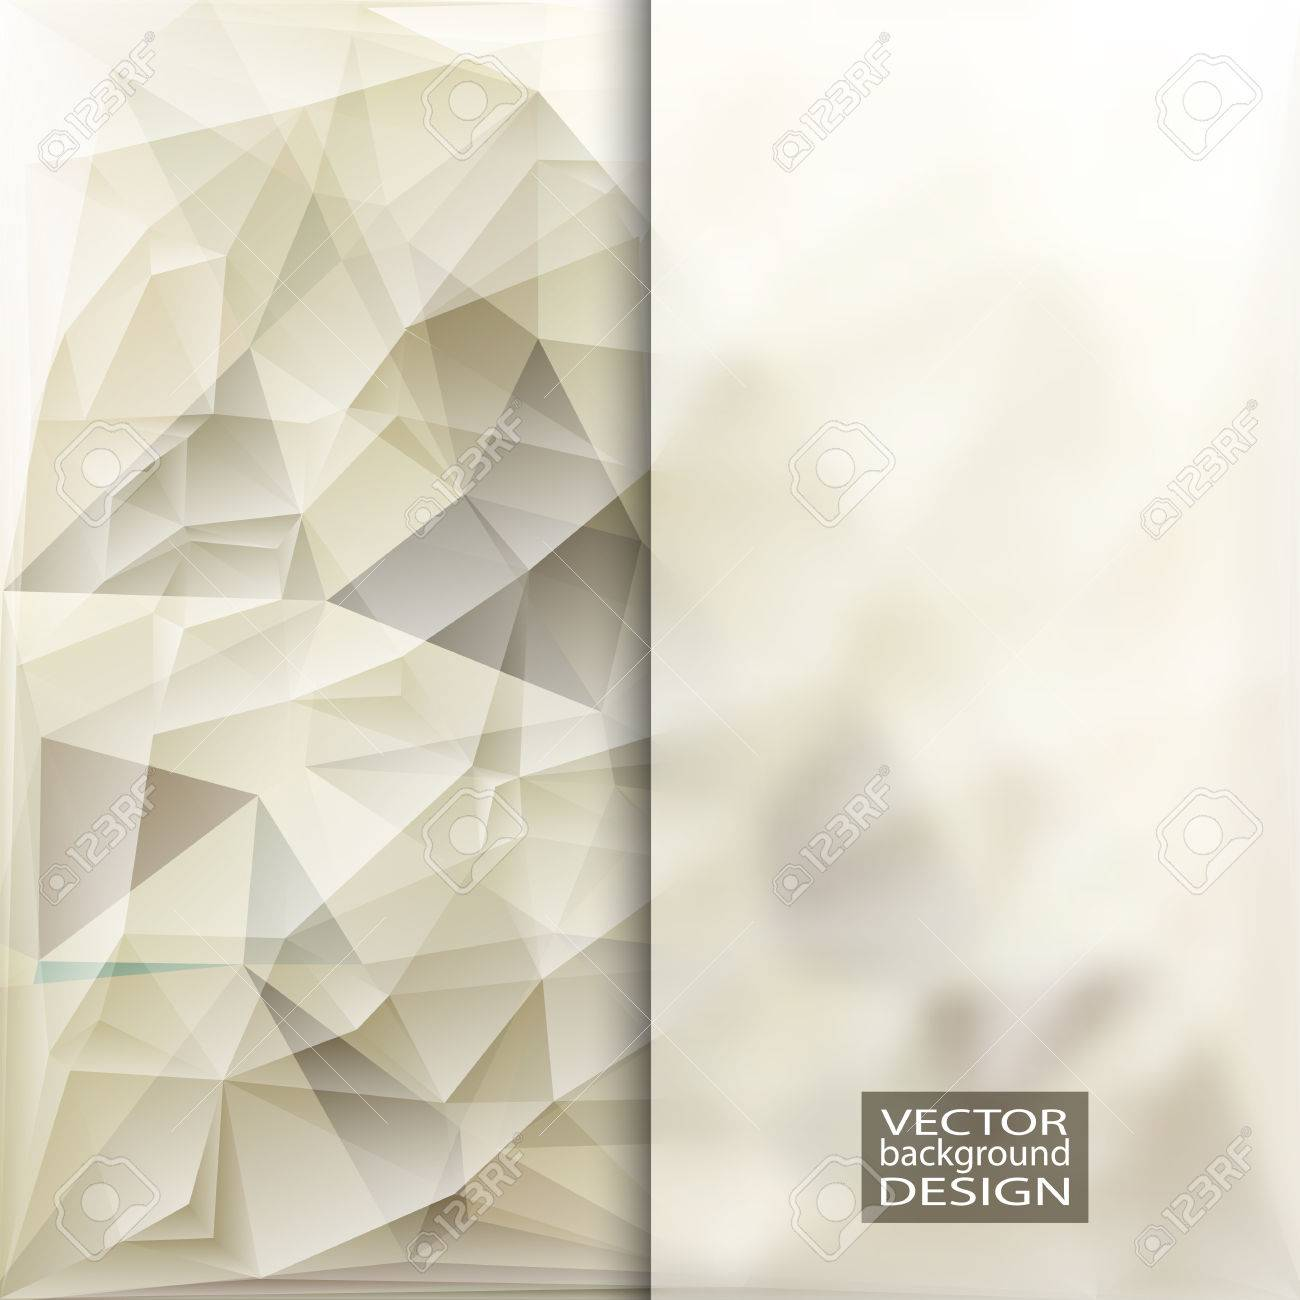 Frosted Glass Designs Multicolor Design Templates With Frosted Glass Insert Geometric